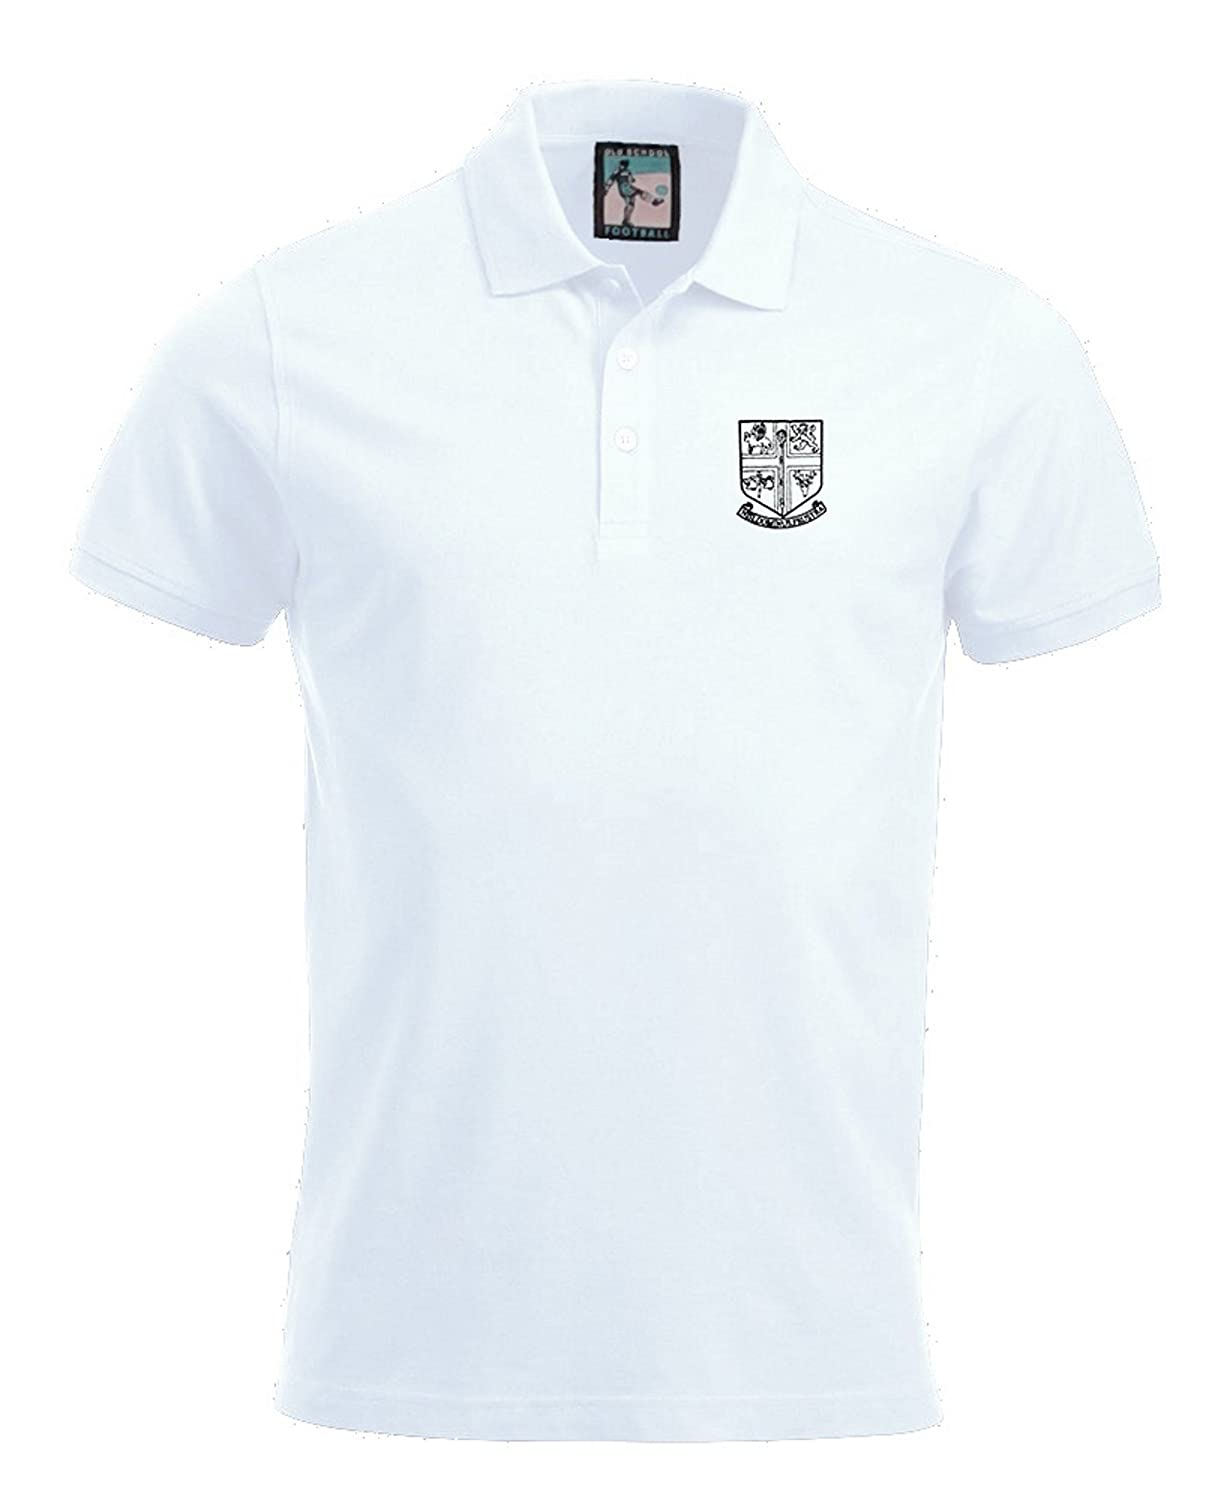 Old School Football Chelsea 1905 de fútbol Polo Tallas S - XXXL ...